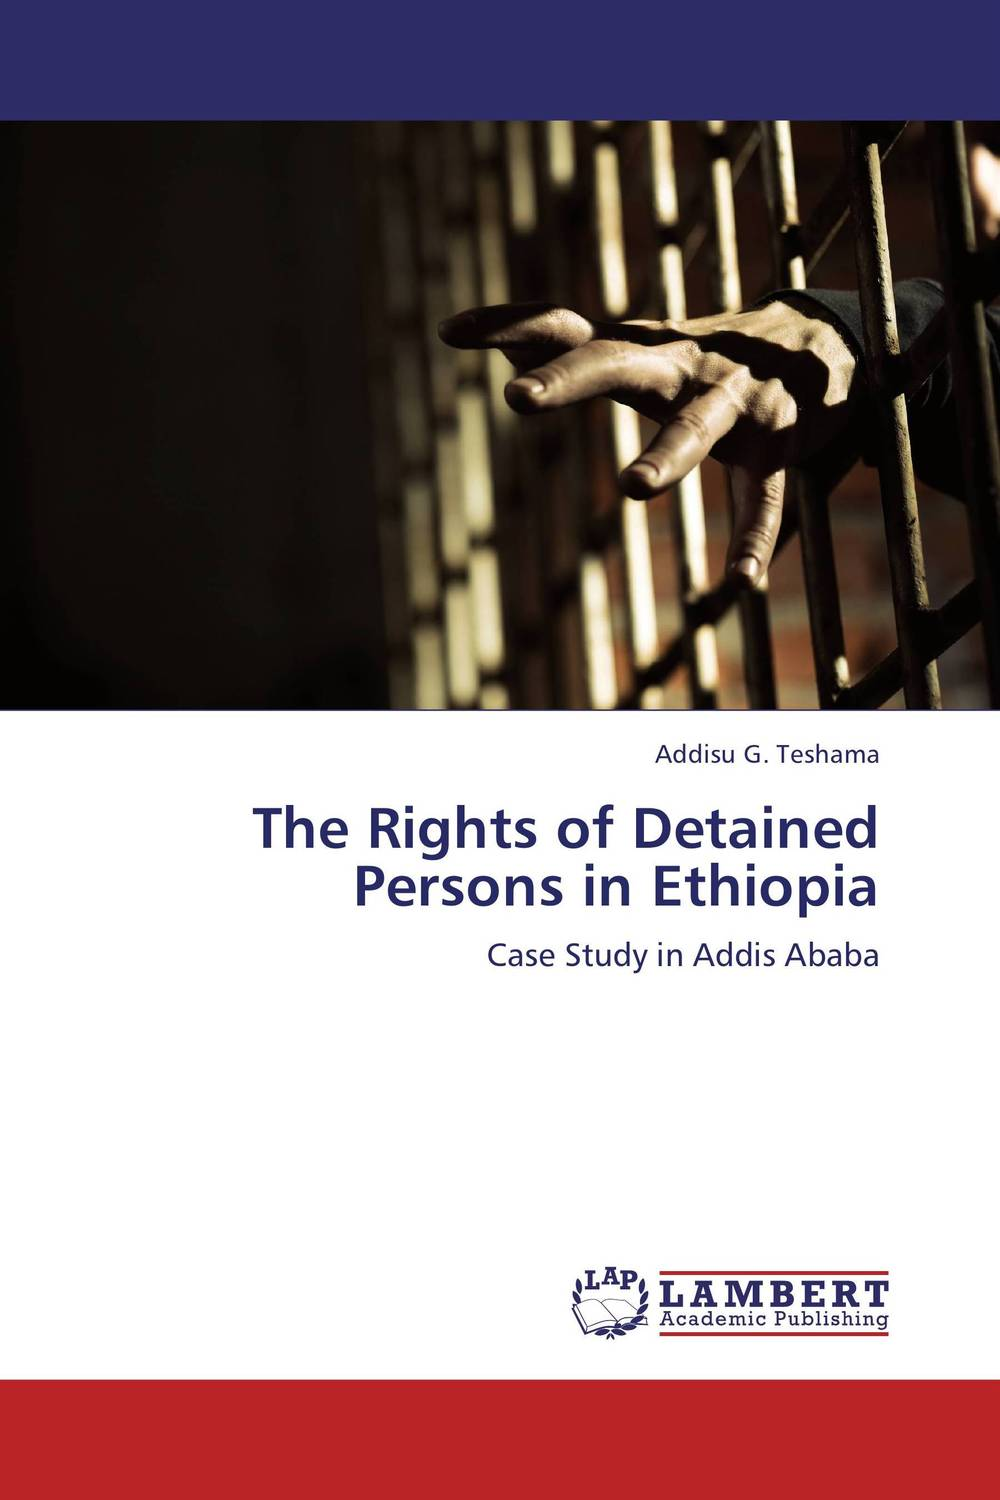 Фото The Rights of Detained Persons in Ethiopia cervical cancer in amhara region in ethiopia